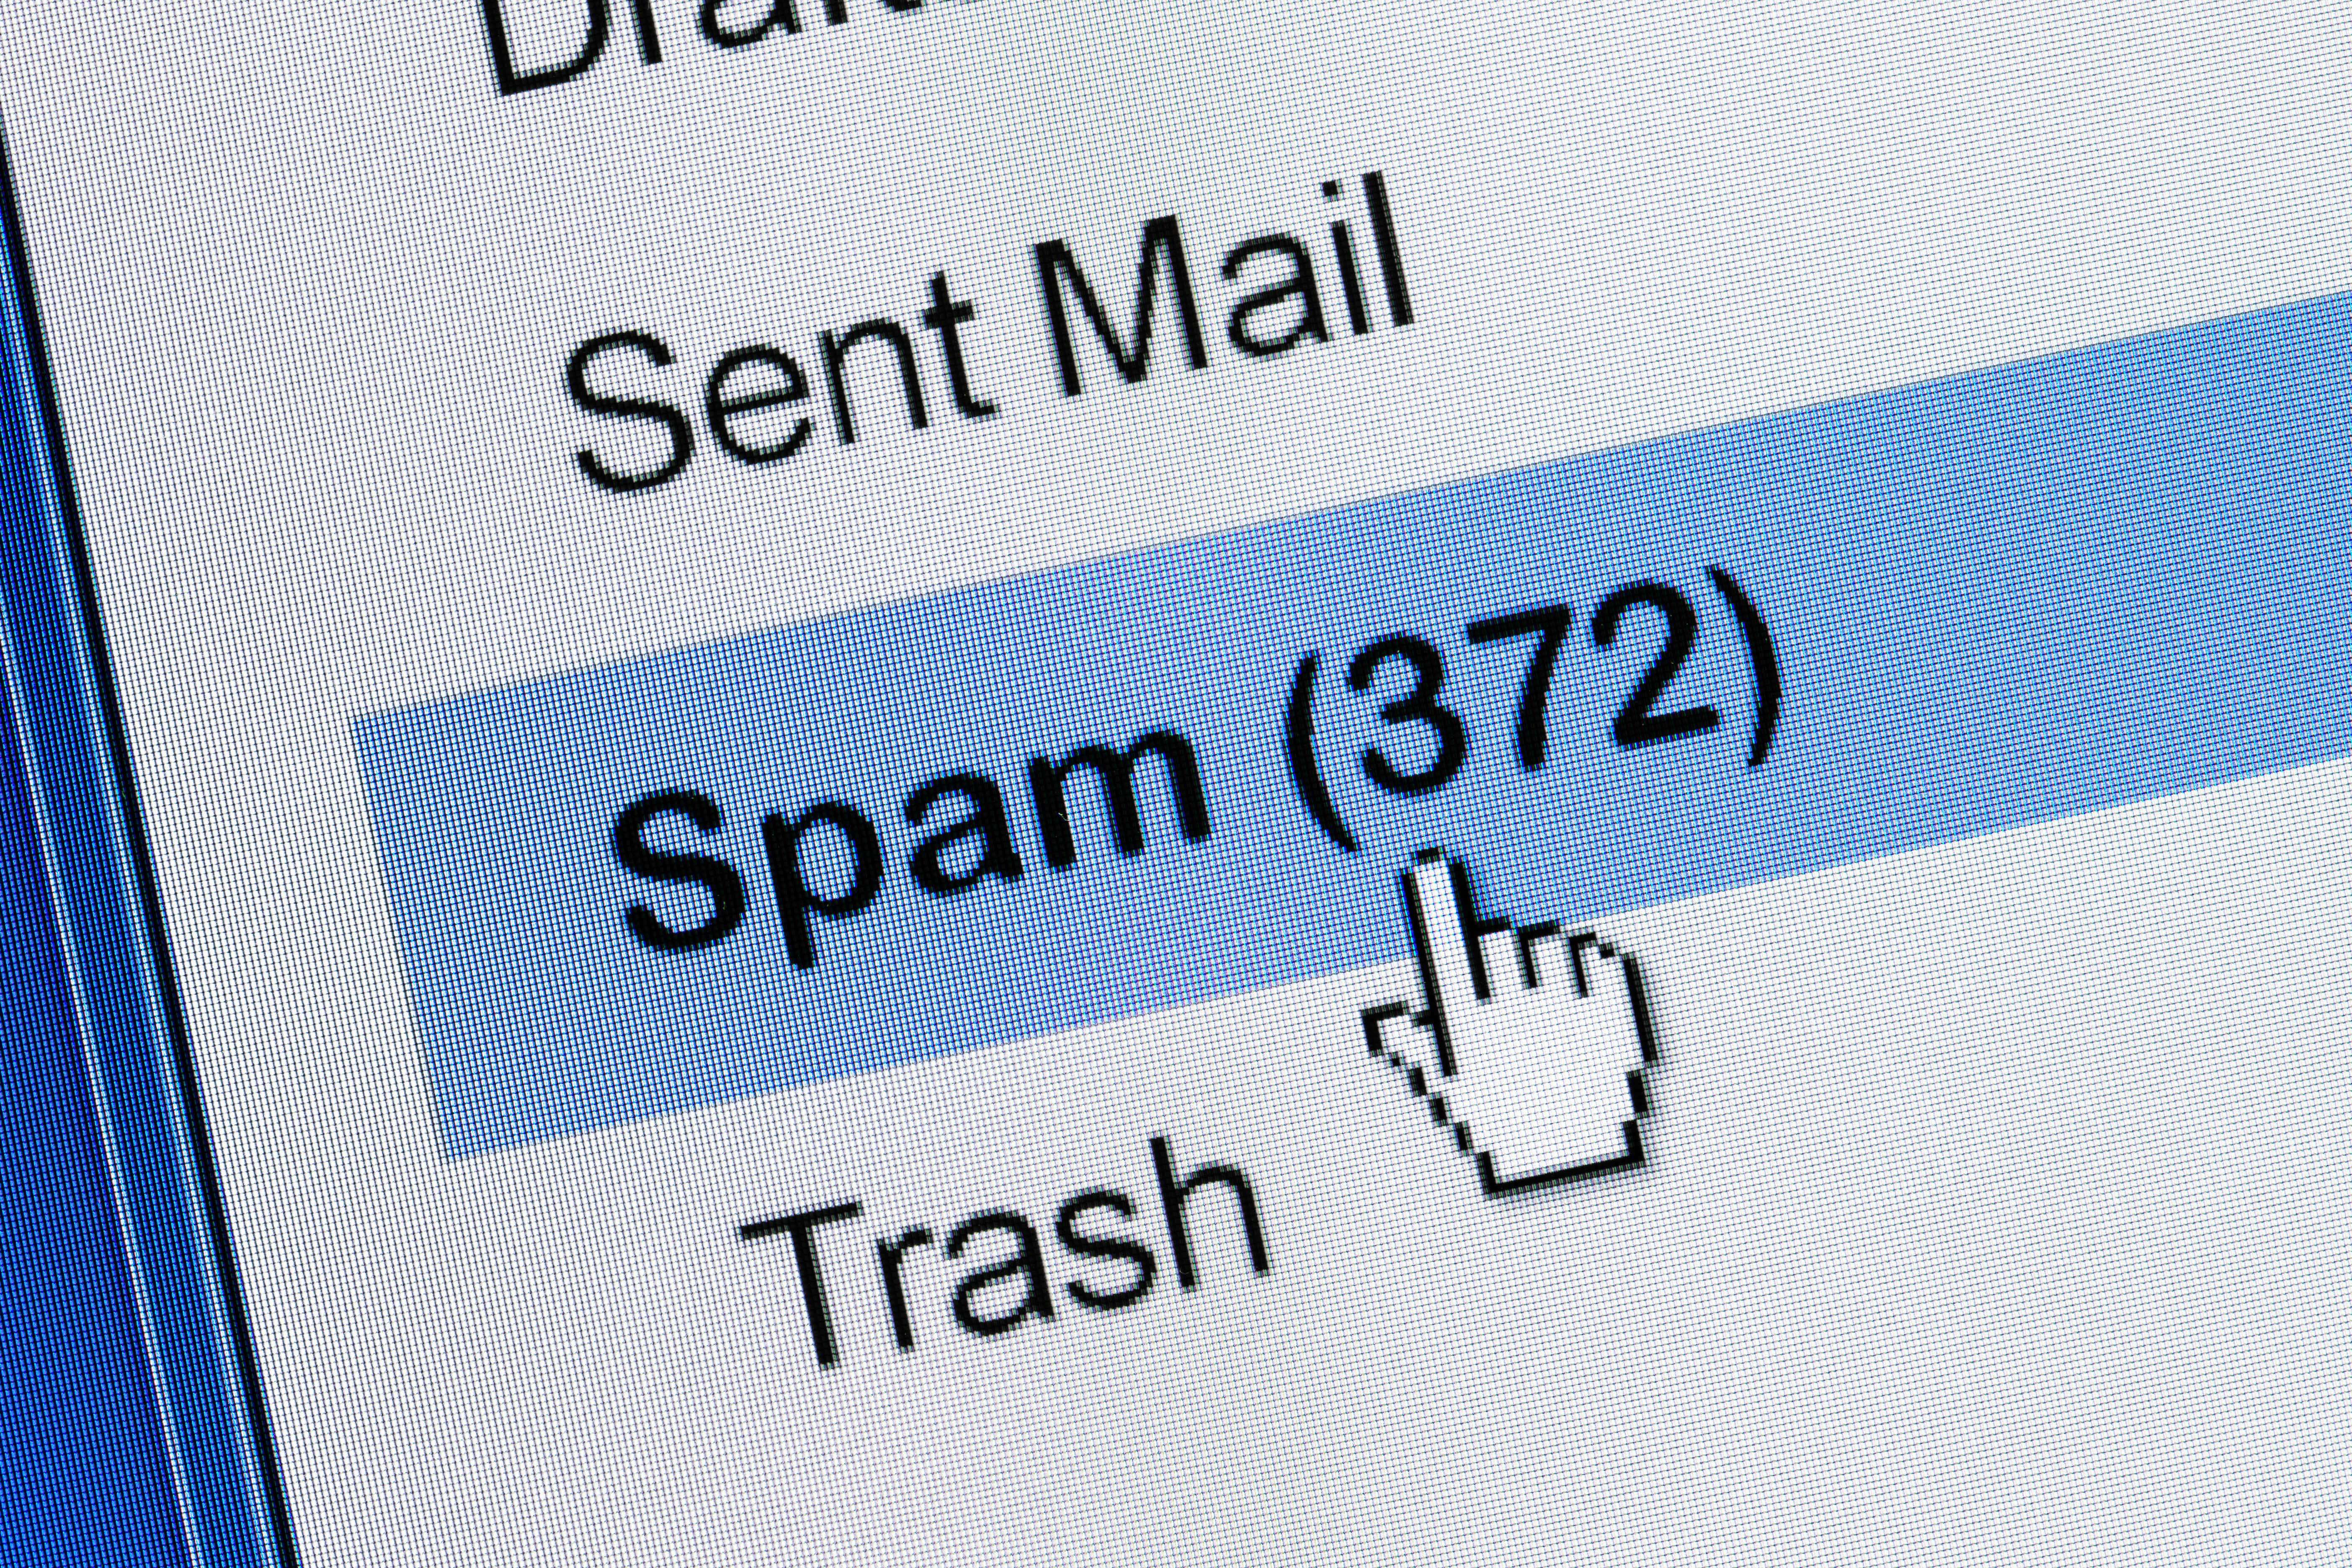 New Spam Filters and Controls for Private Email Accounts